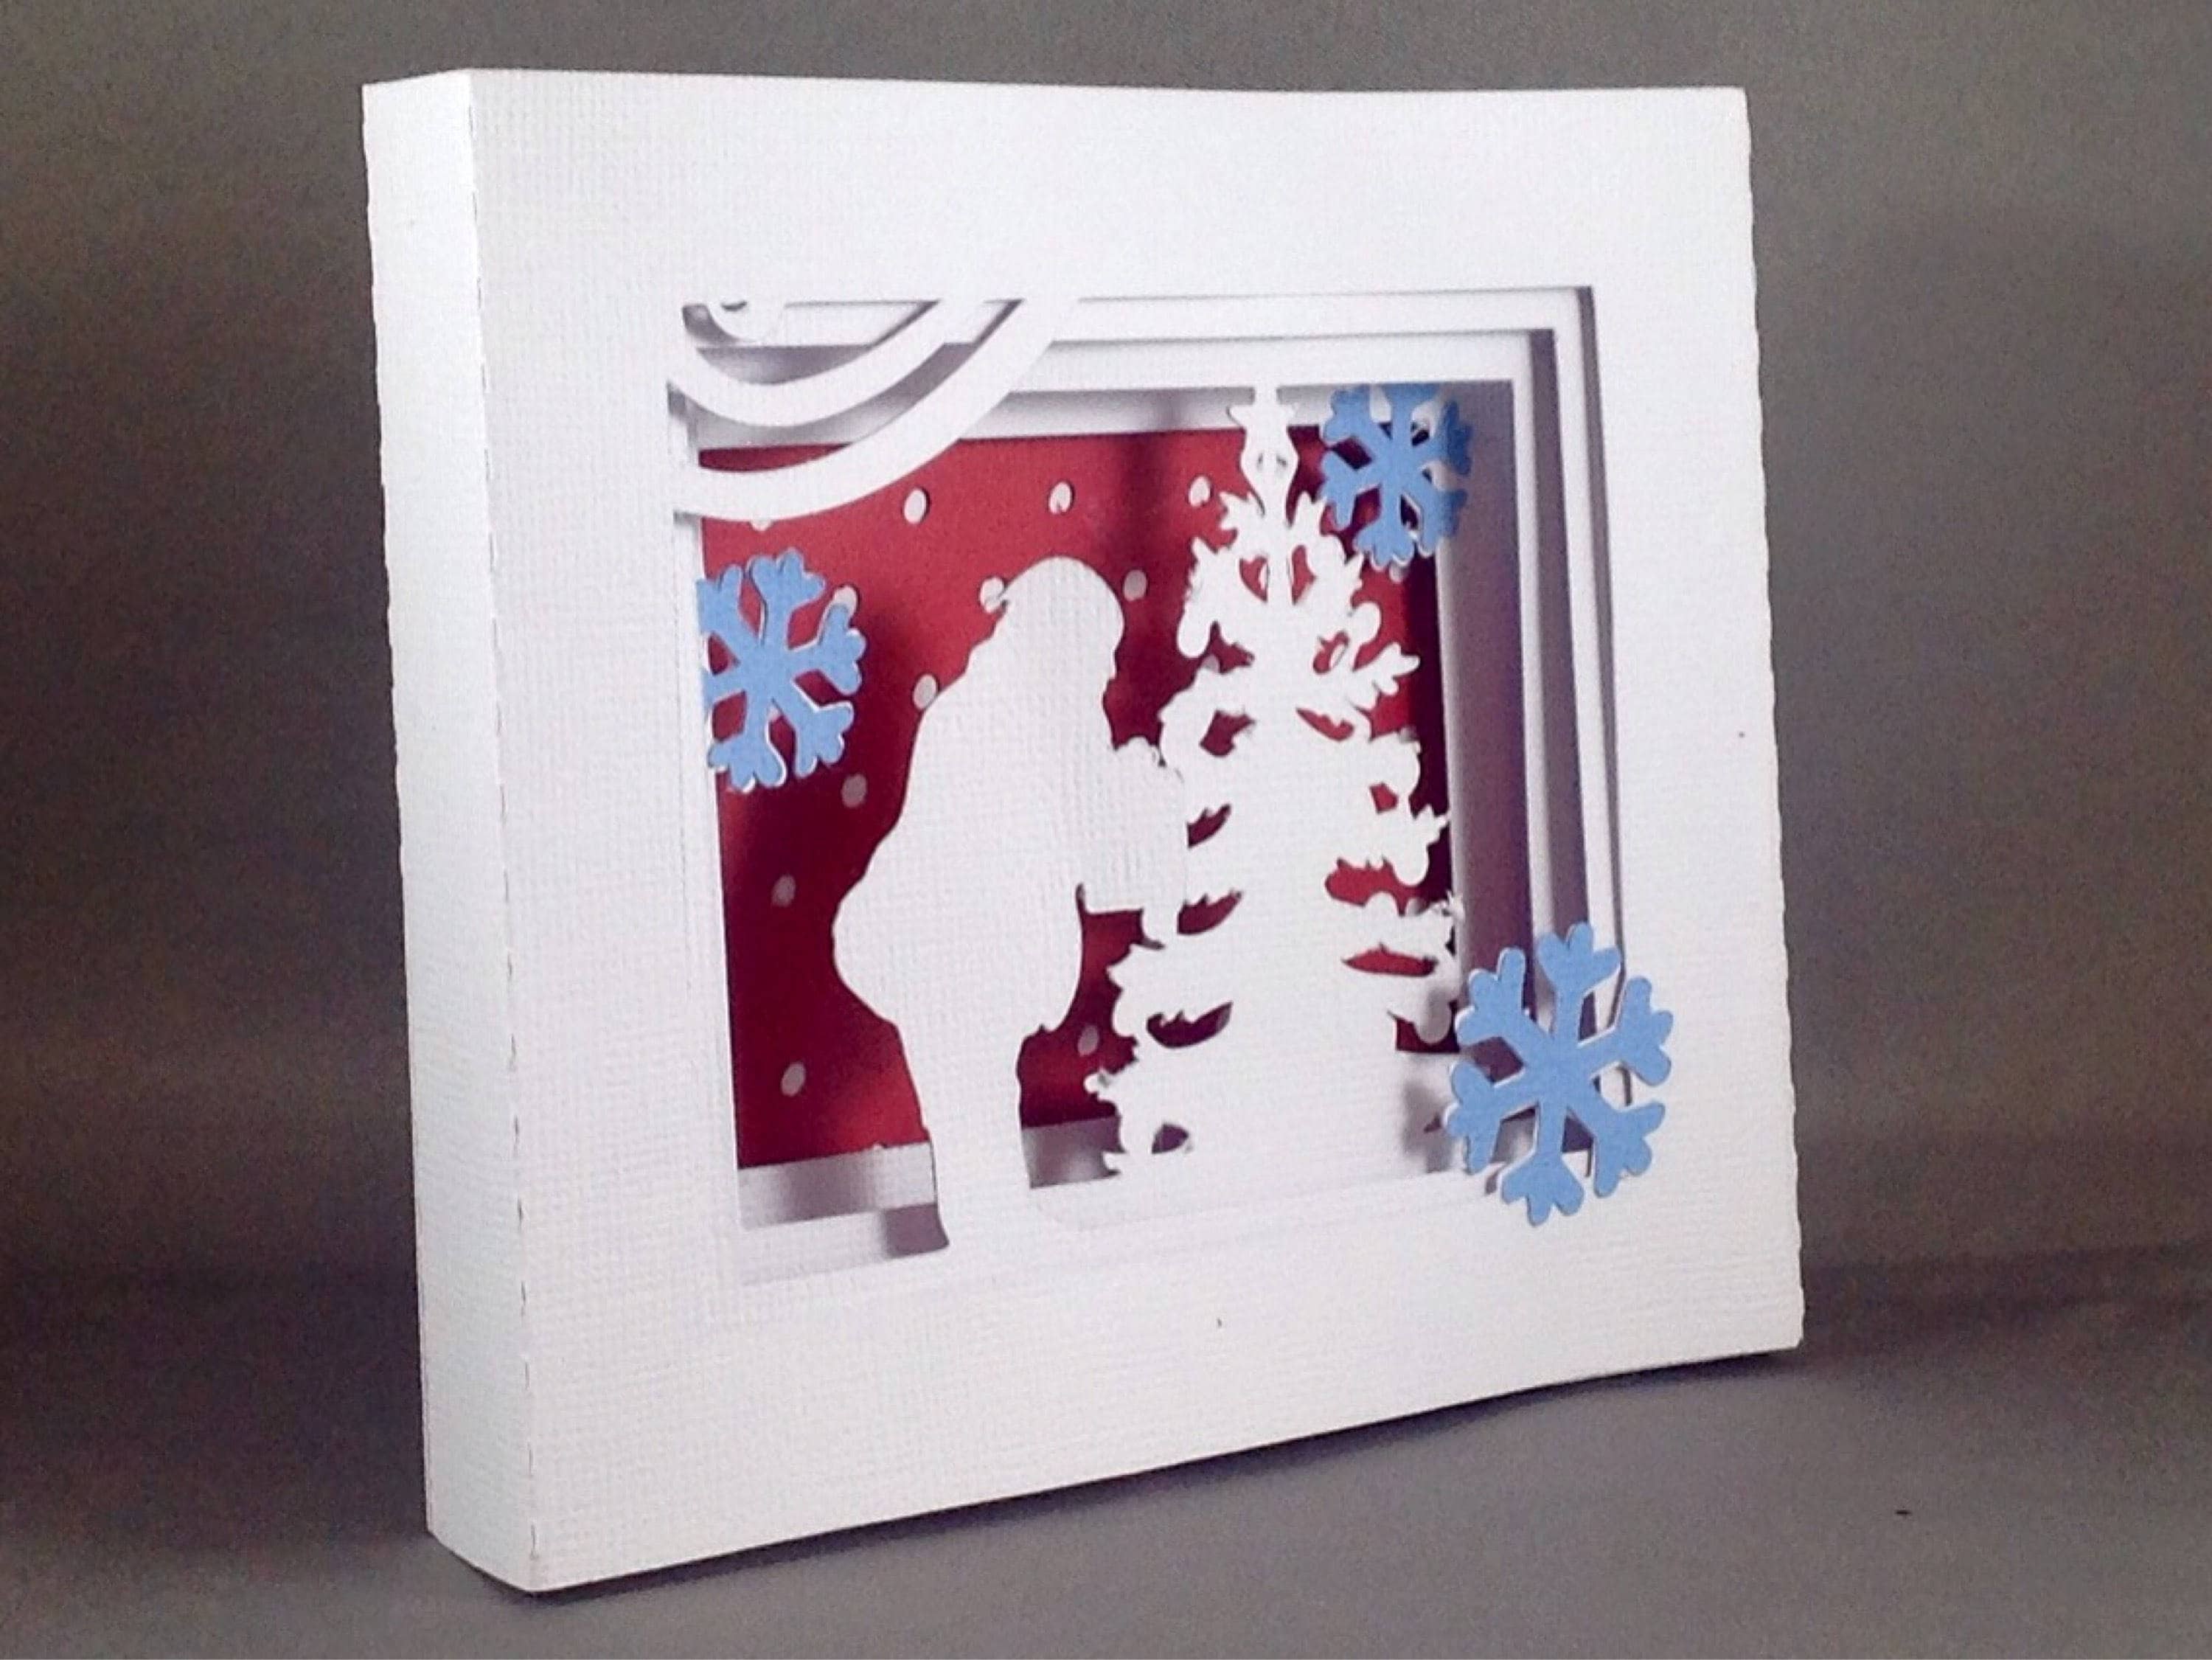 Santa clause cards holiday cards ideas w christmas tree christmas santa clause cards holiday cards ideas w christmas tree christmas cards 2017 christmas cards holiday cards 2017 santa claus card set m4hsunfo Image collections